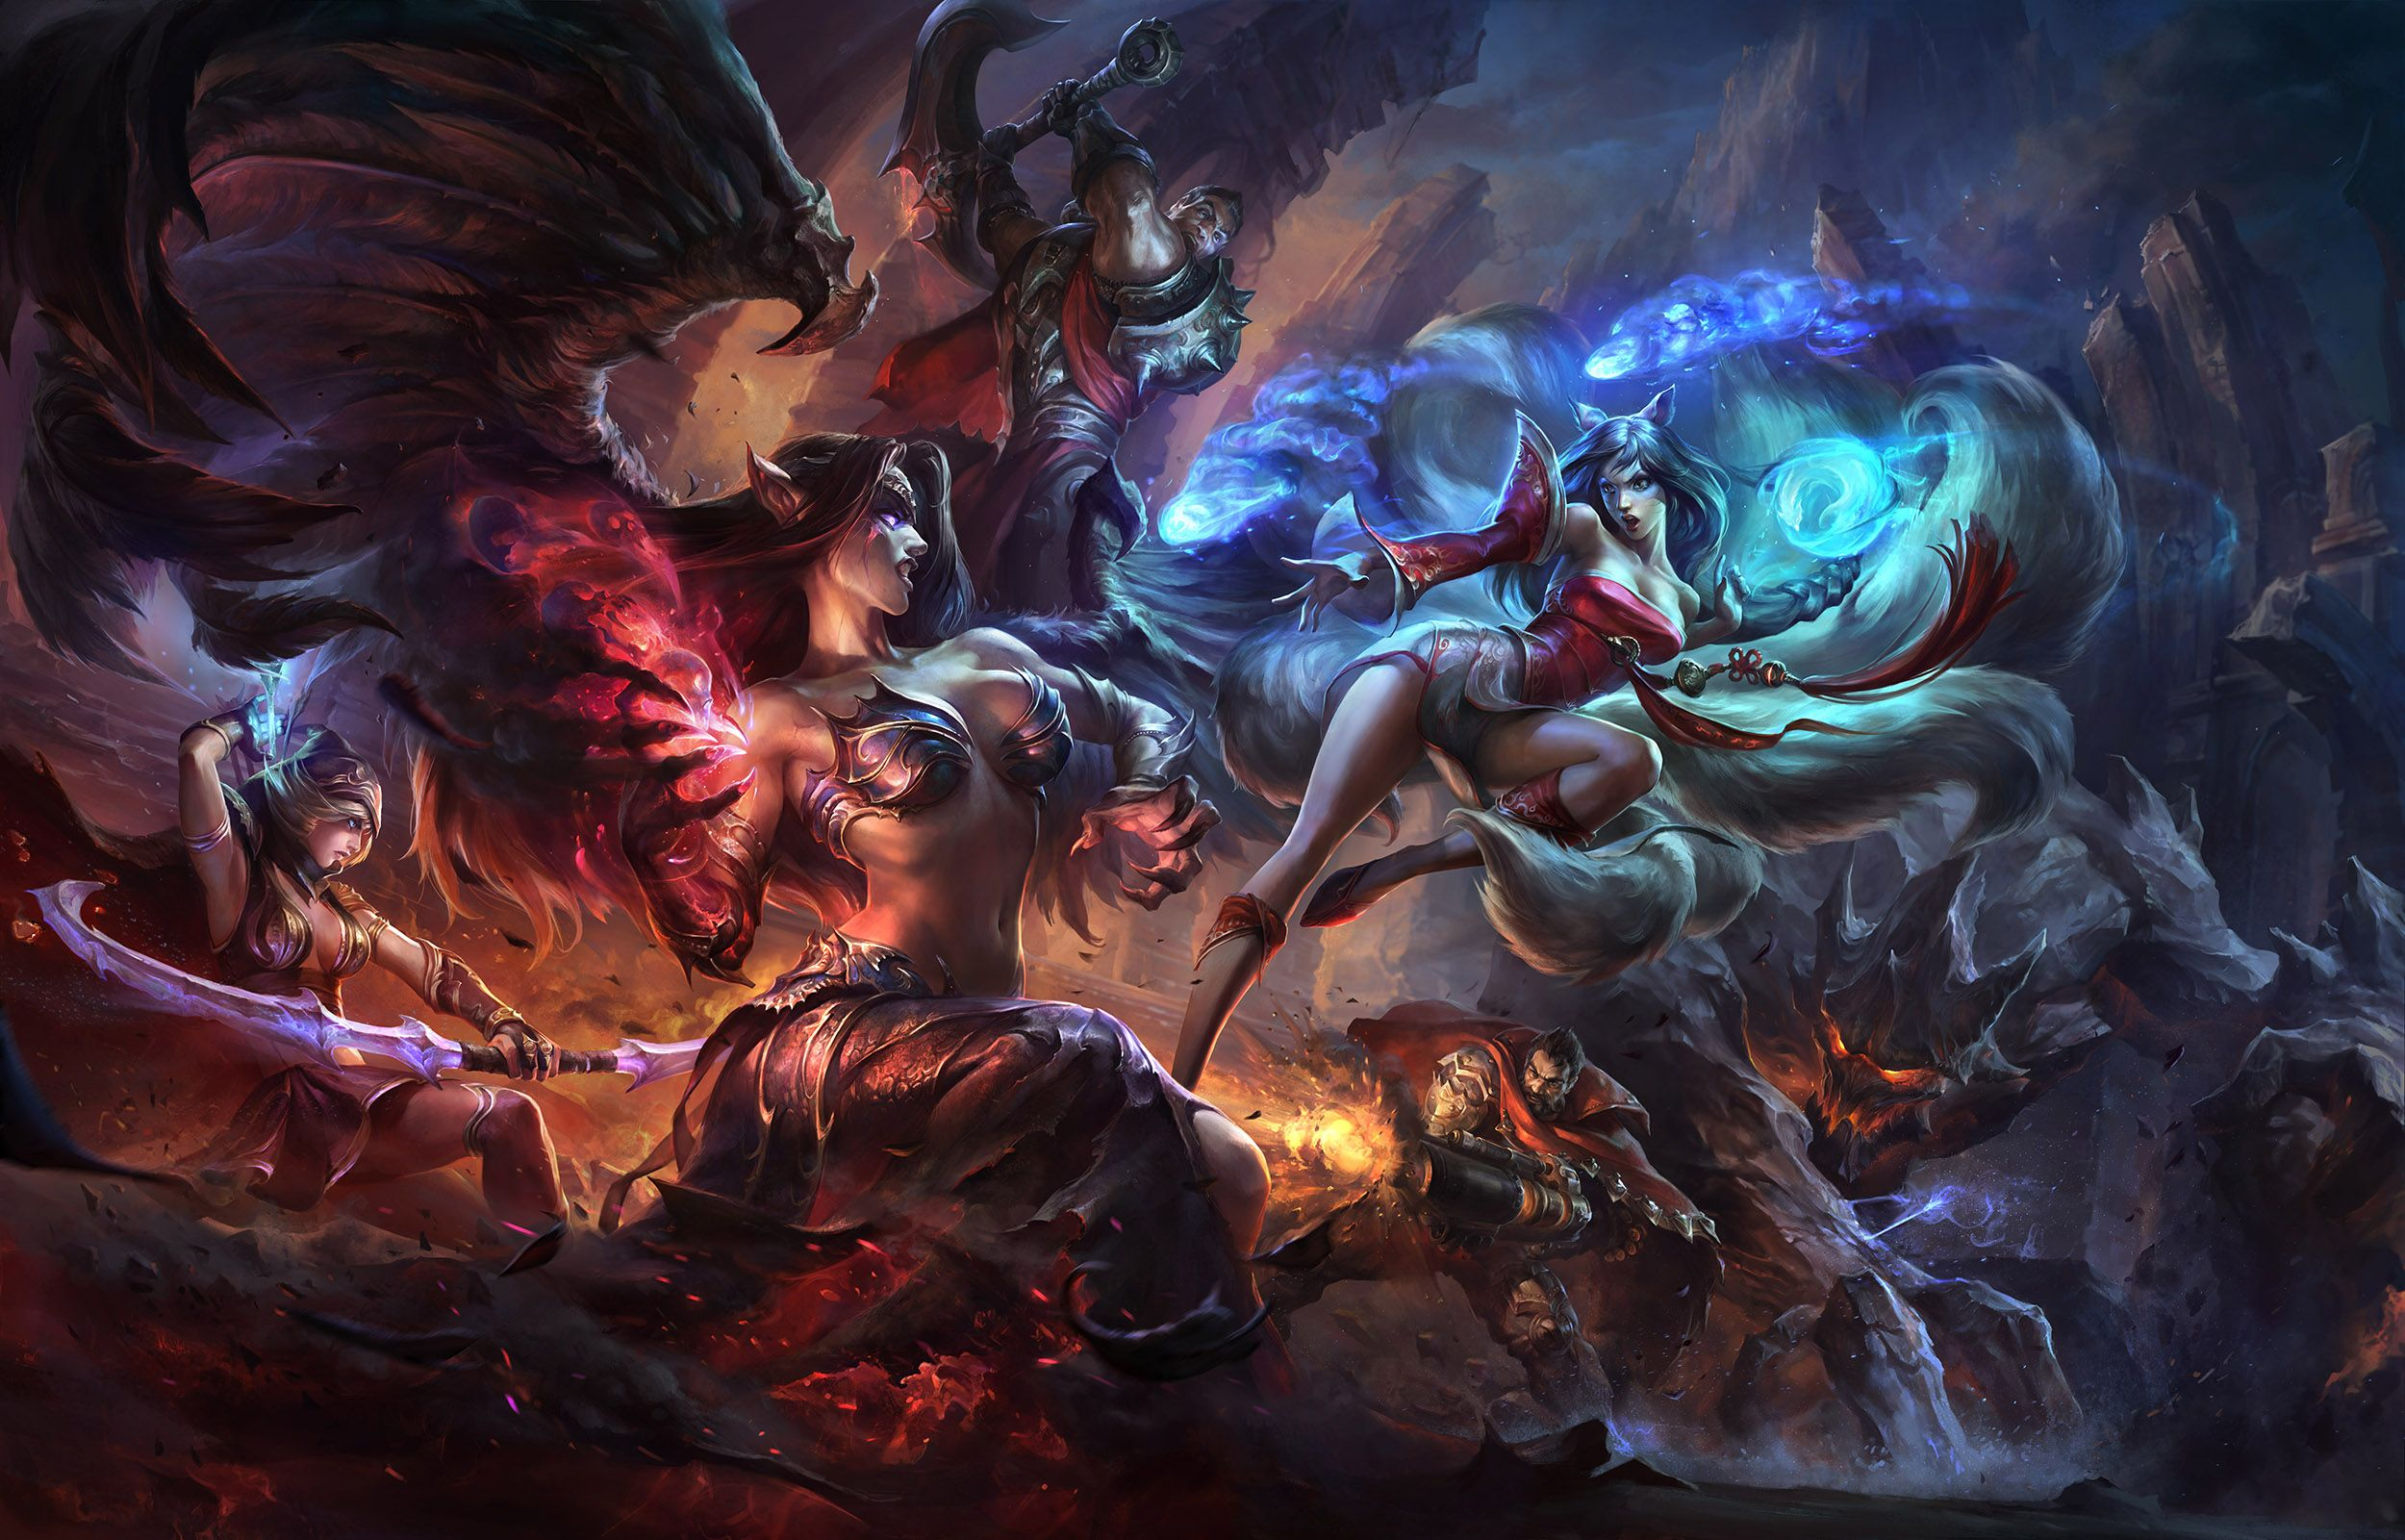 A Collection Of High Res League Of Legends Wallpapers Album On Imgur League Of Legends Lol Hinh Nền